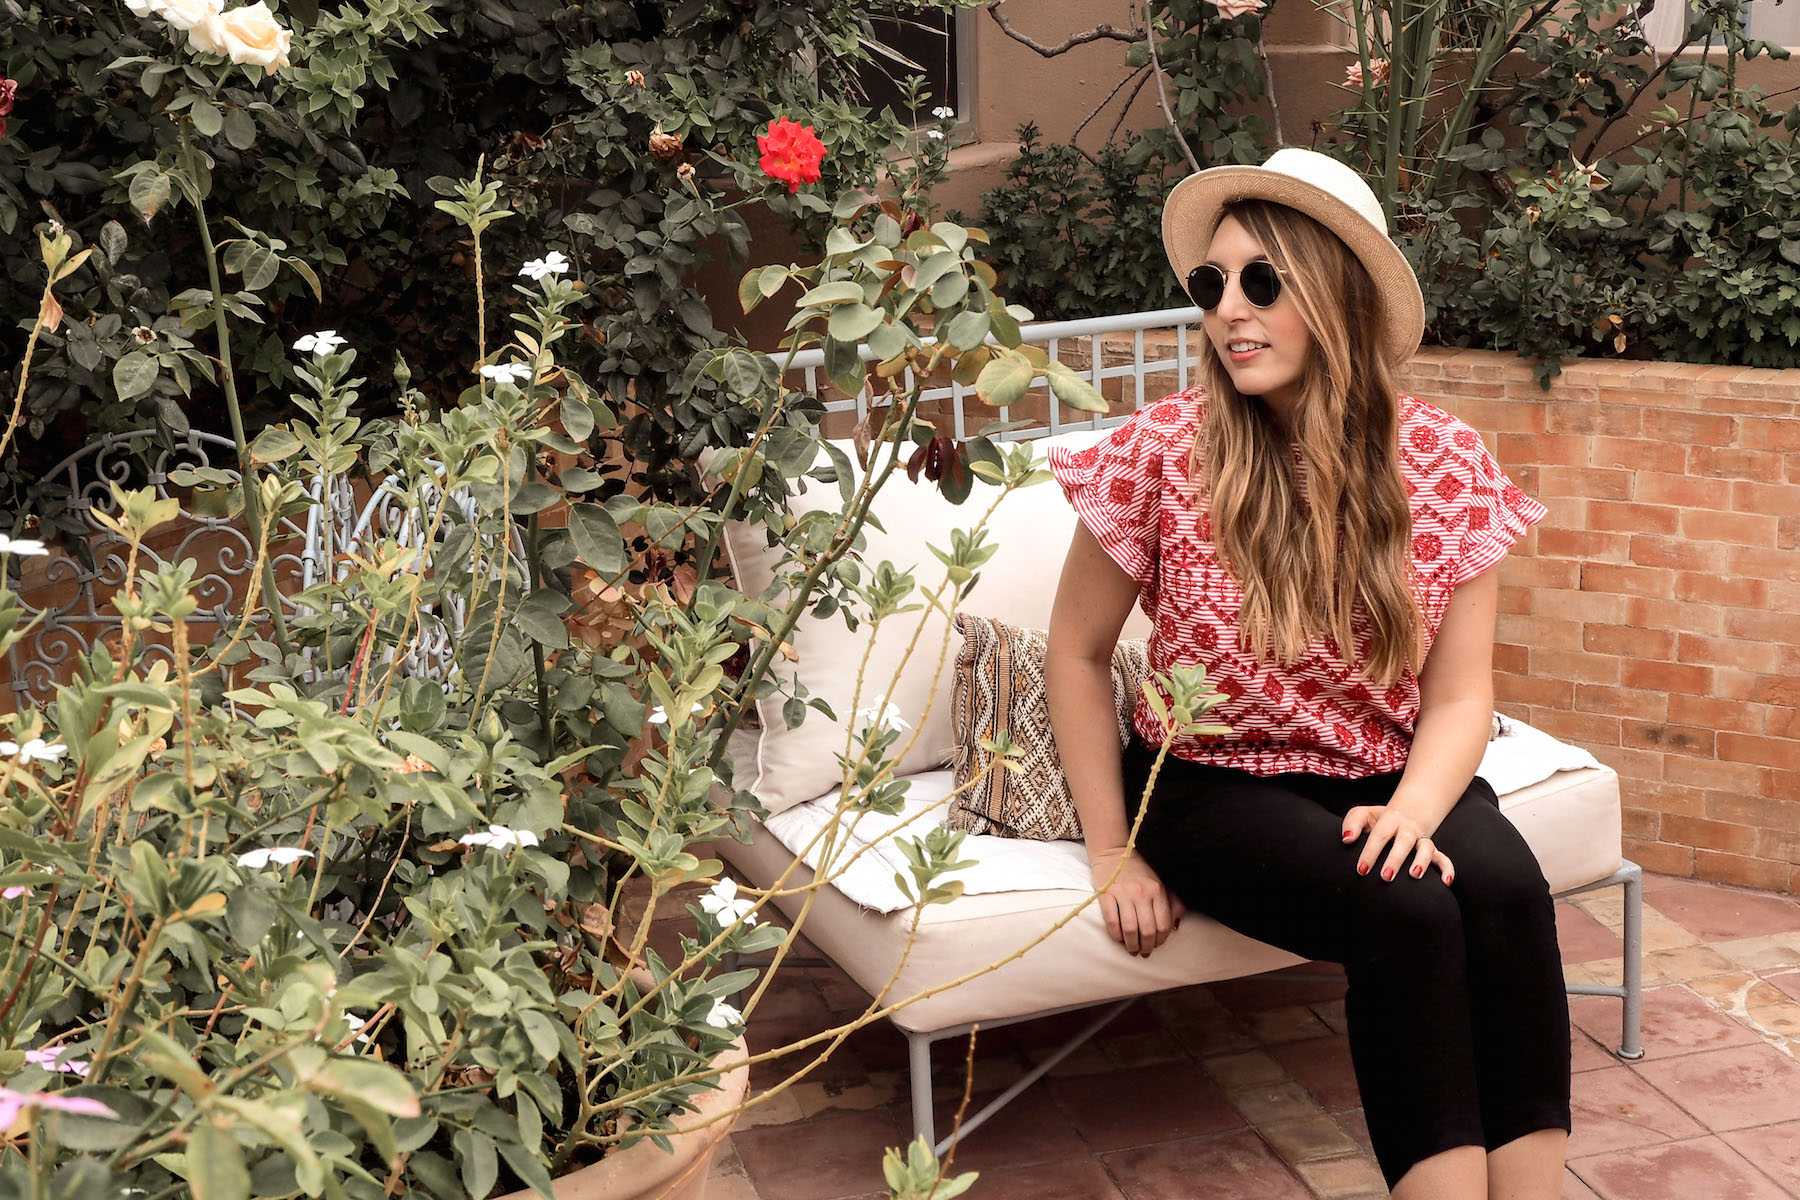 Zara red top, Hush black trousers, Gap hat, Ray-Ban sunglasses | Wolf & Stag's Travel Guide to Marrakech, Morocco